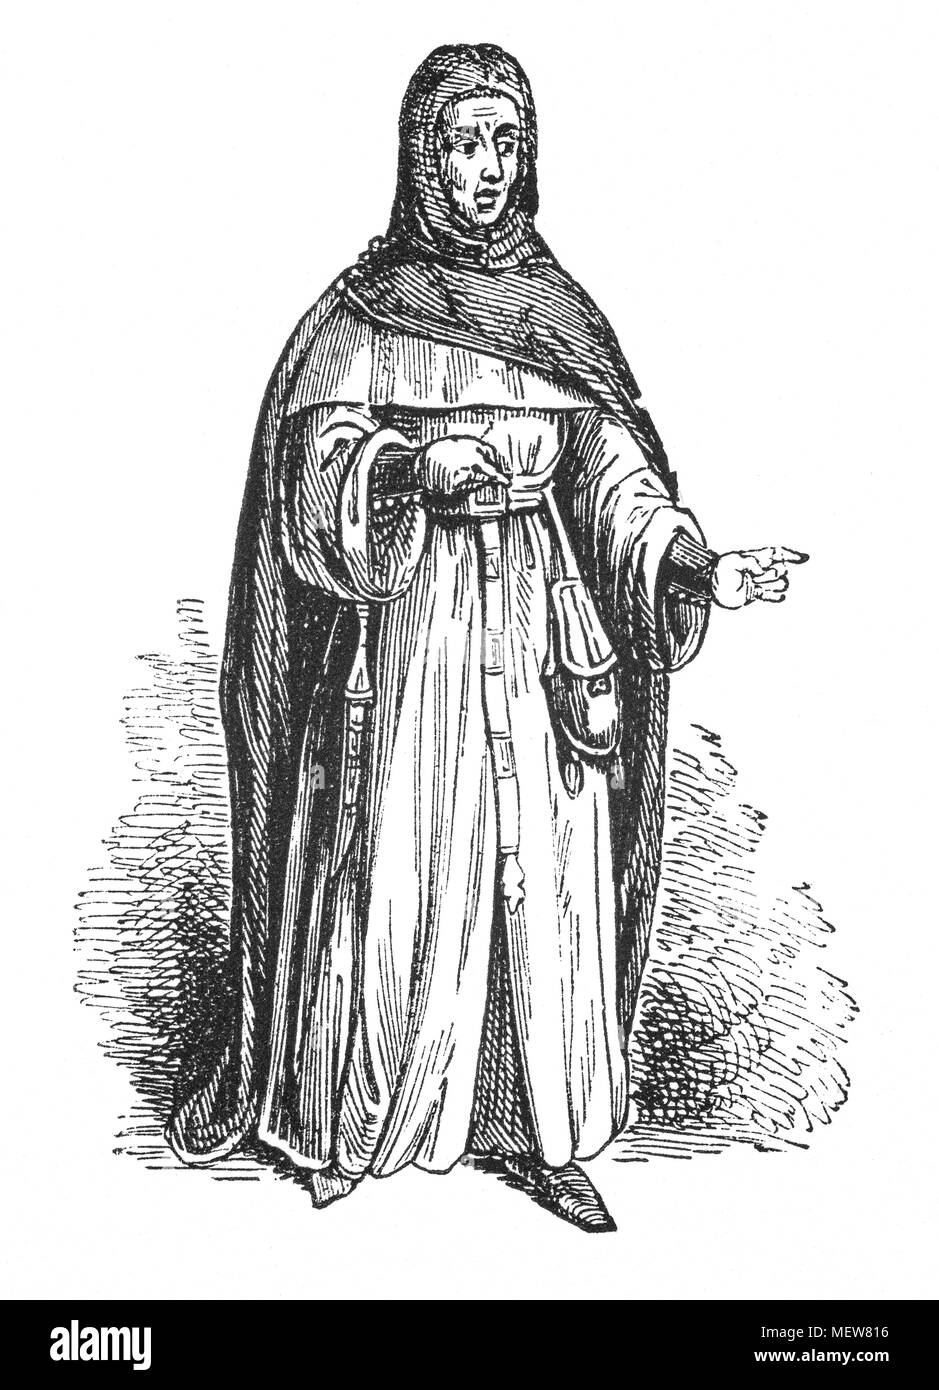 Sir William Gascoigne (1350 – 1419) was Chief Justice of England during the reign of King Henry IV. He achieved histotic fame through the popular tale of his committing the Prince of Wales (the future Henry V) to prison. It is said that the judge had directed the punishment of one of the prince's riotous companions, and the prince, who was present and enraged at the sentence, struck or grossly insulted the judge. Gascoigne immediately committed him to prison, and gave the prince a dressing-down that caused him to acknowledge the justice of the sentence. The staory has never been authenticated, - Stock Image